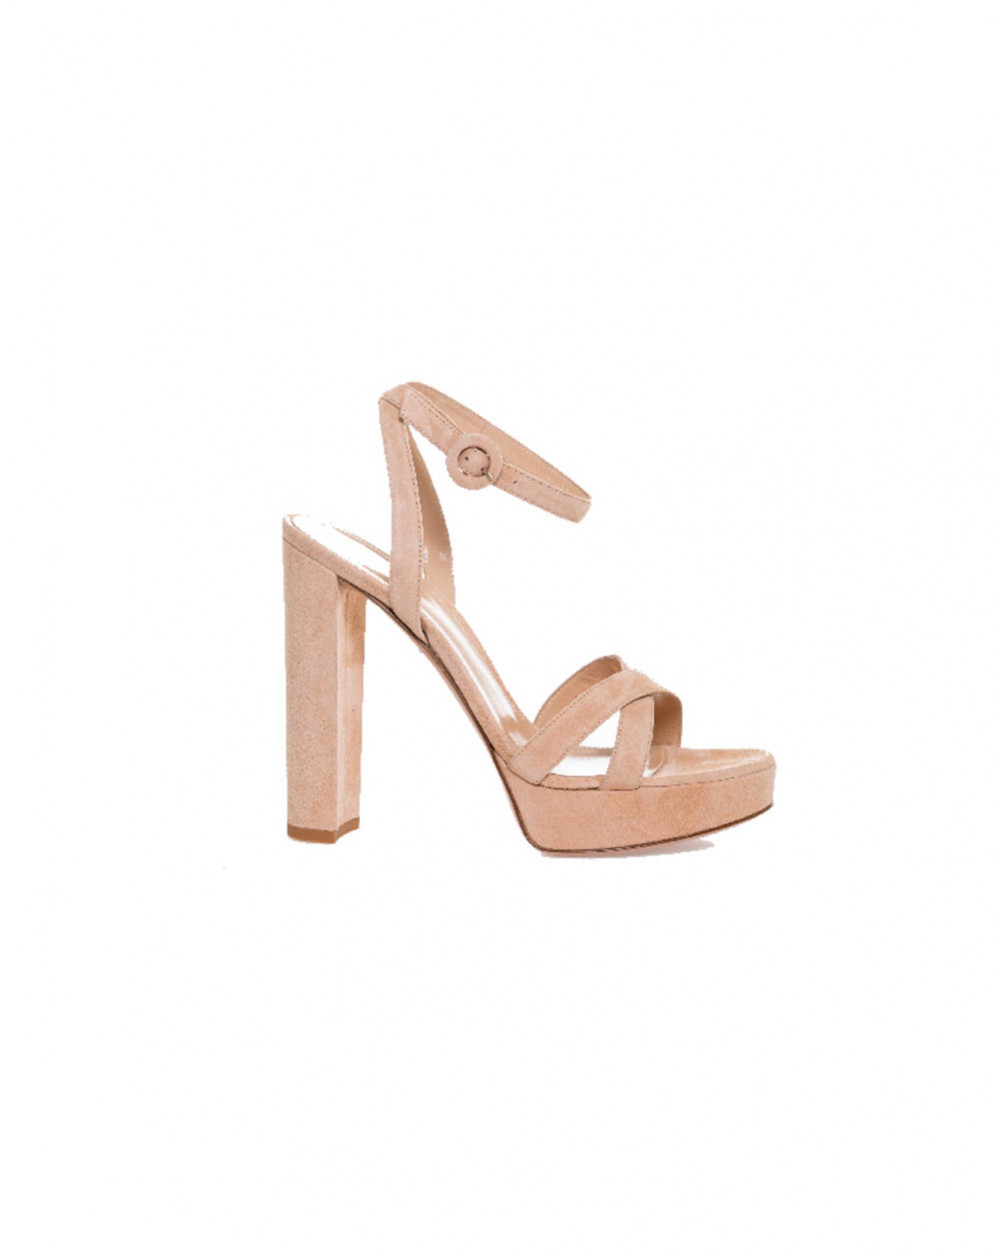 """High-heeled sandals Gianvito Rossi """"Poppy"""" light pink for women"""